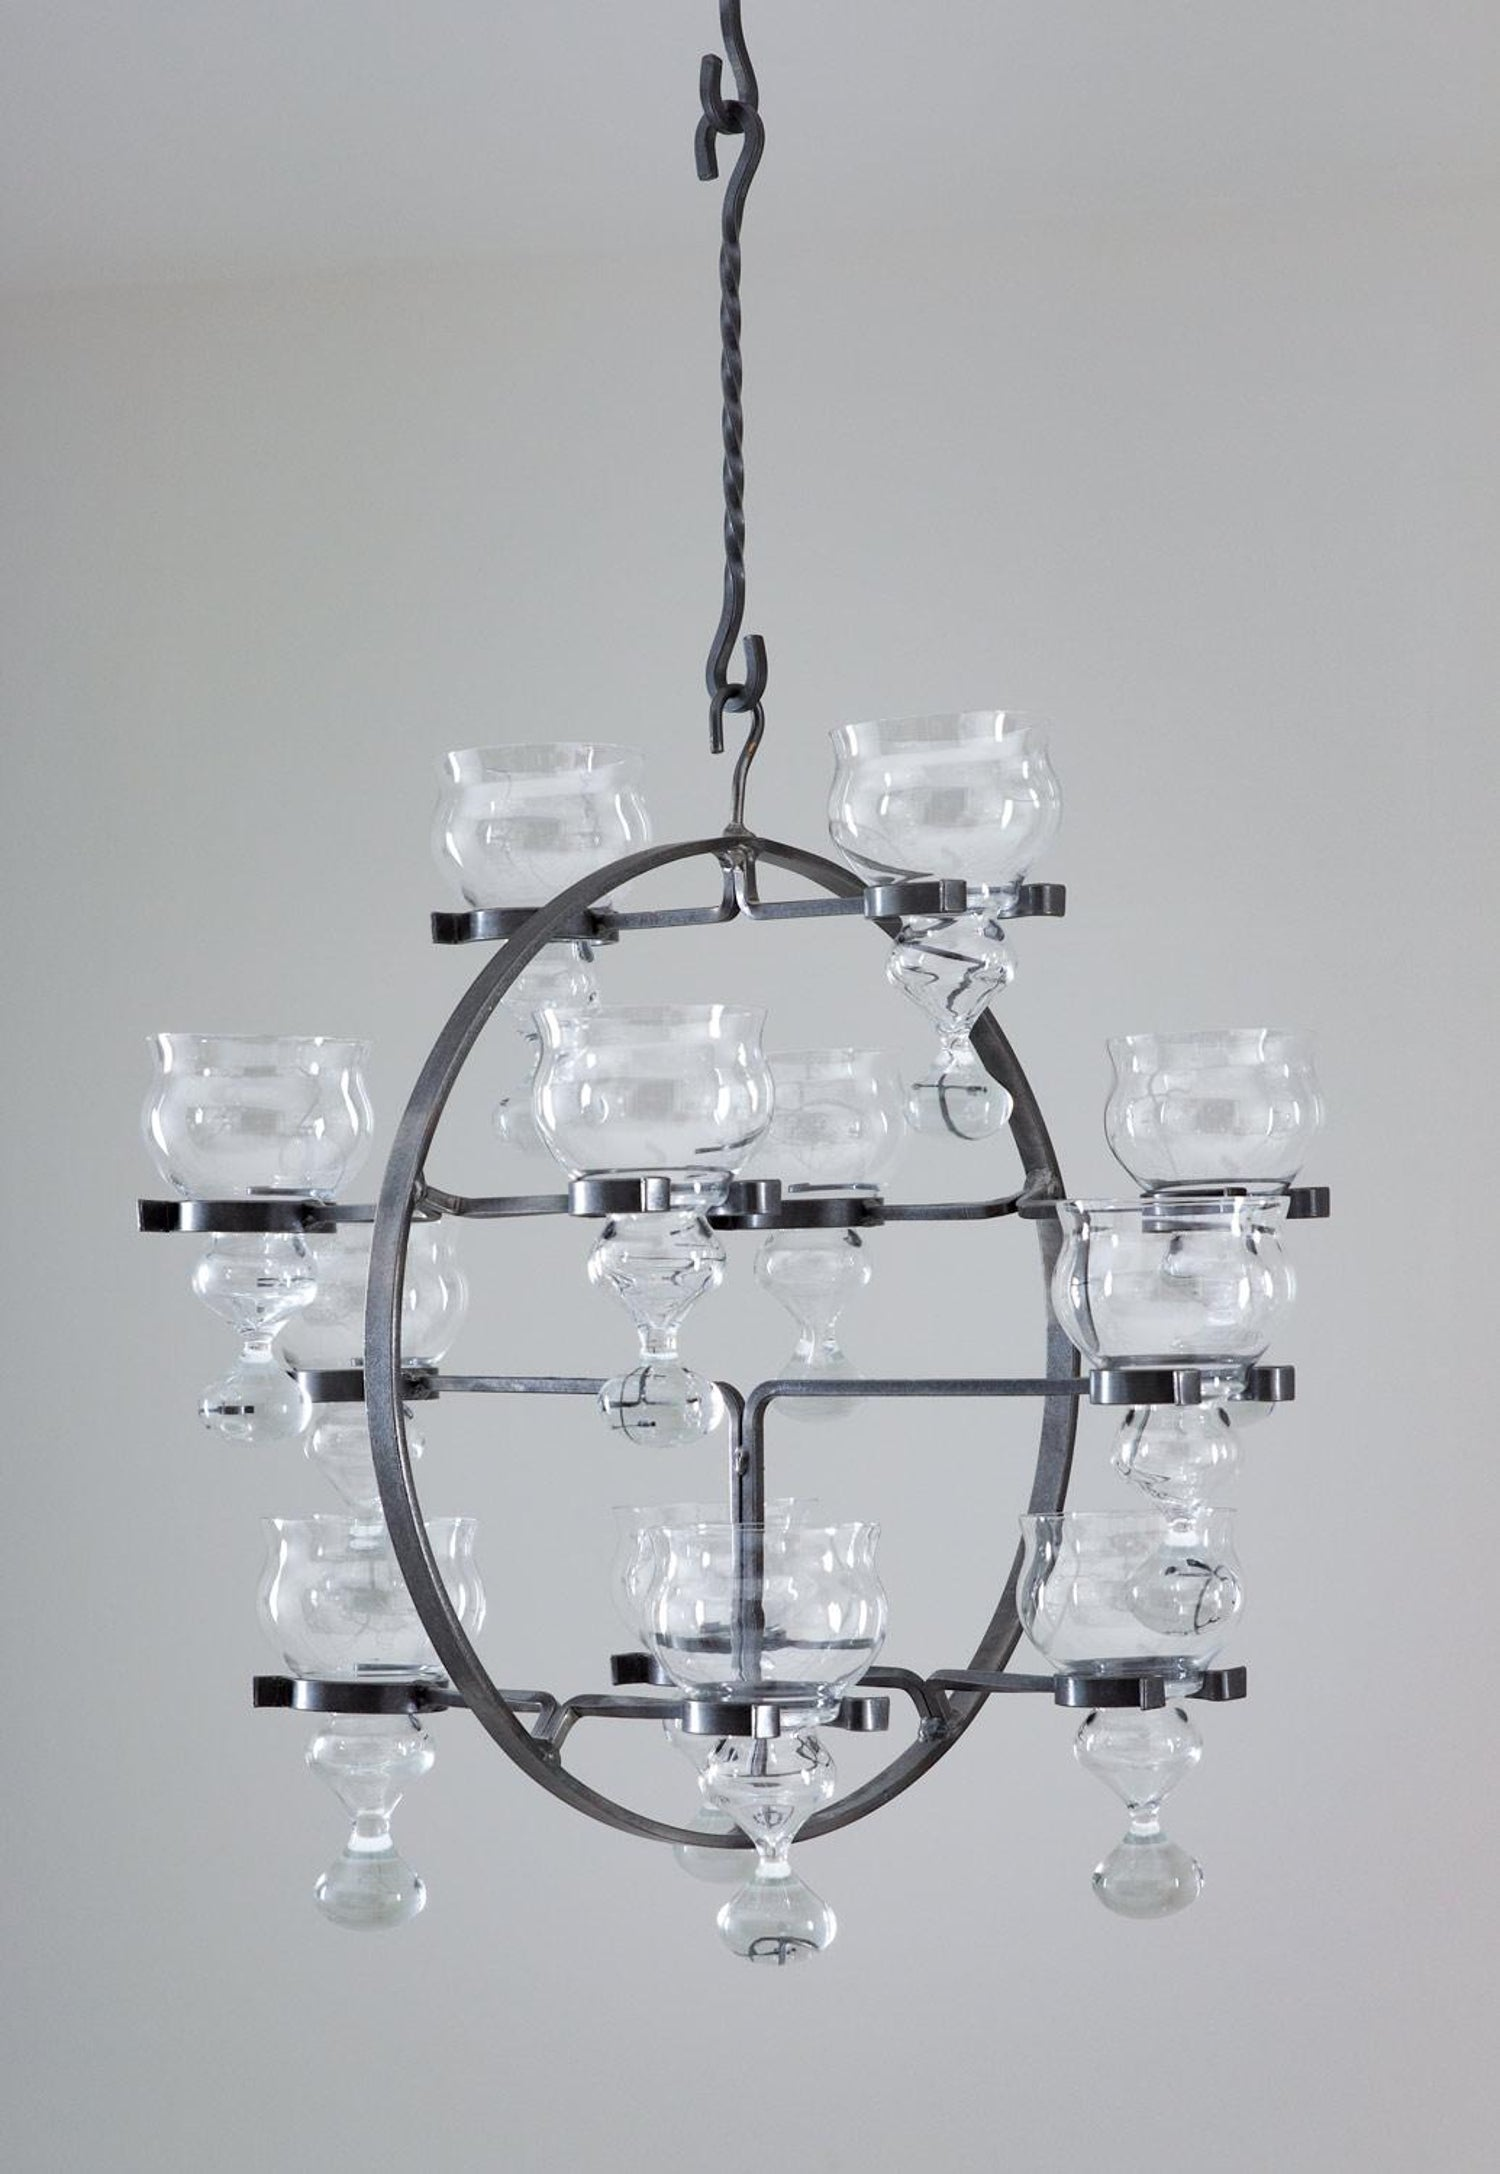 Swedish Iron And Glass Hanging Candelabra Chandelier By Bertil Vallien For Sale At 1stdibs